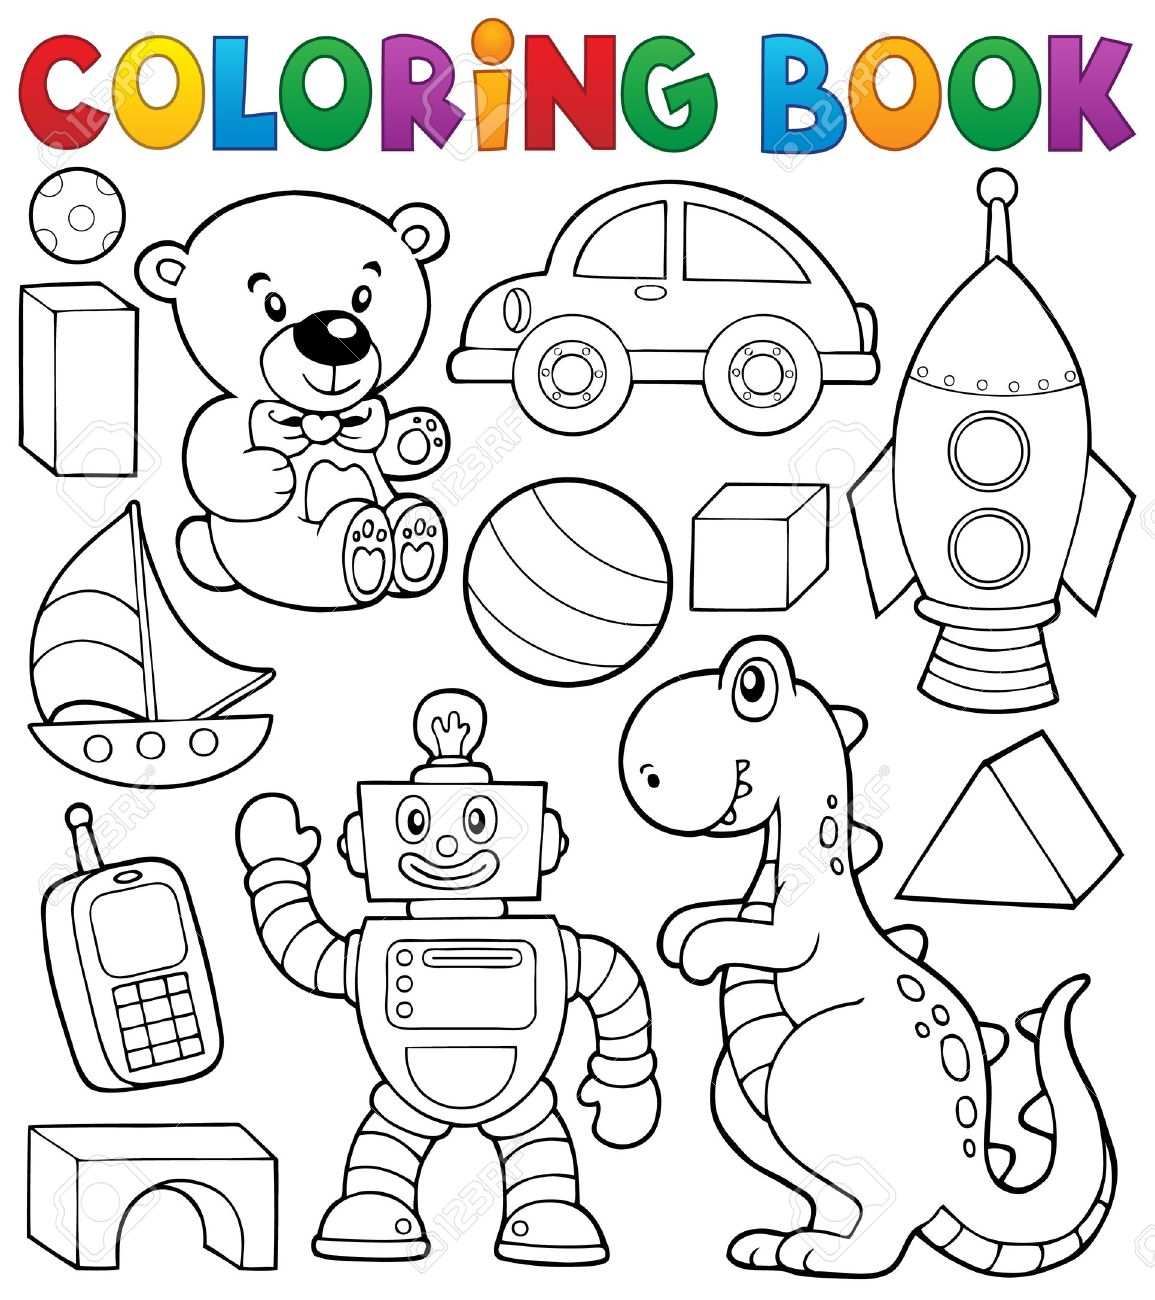 Colouring activities tes - Coloring Book With Toys Thematic Royalty Free Cliparts Vectors